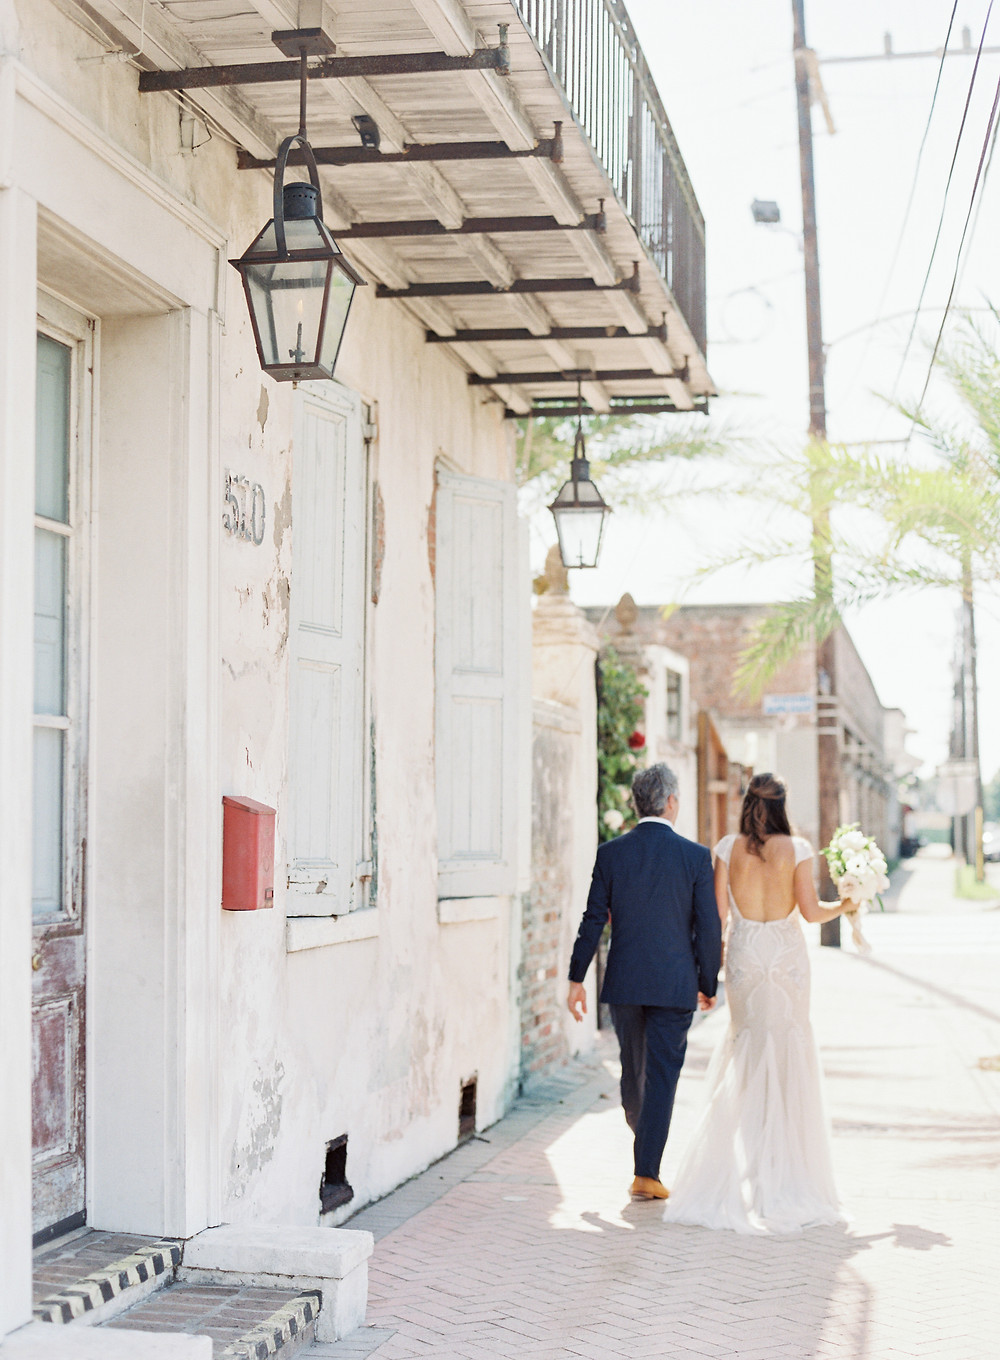 Uptown New Orleans Bride and Groom